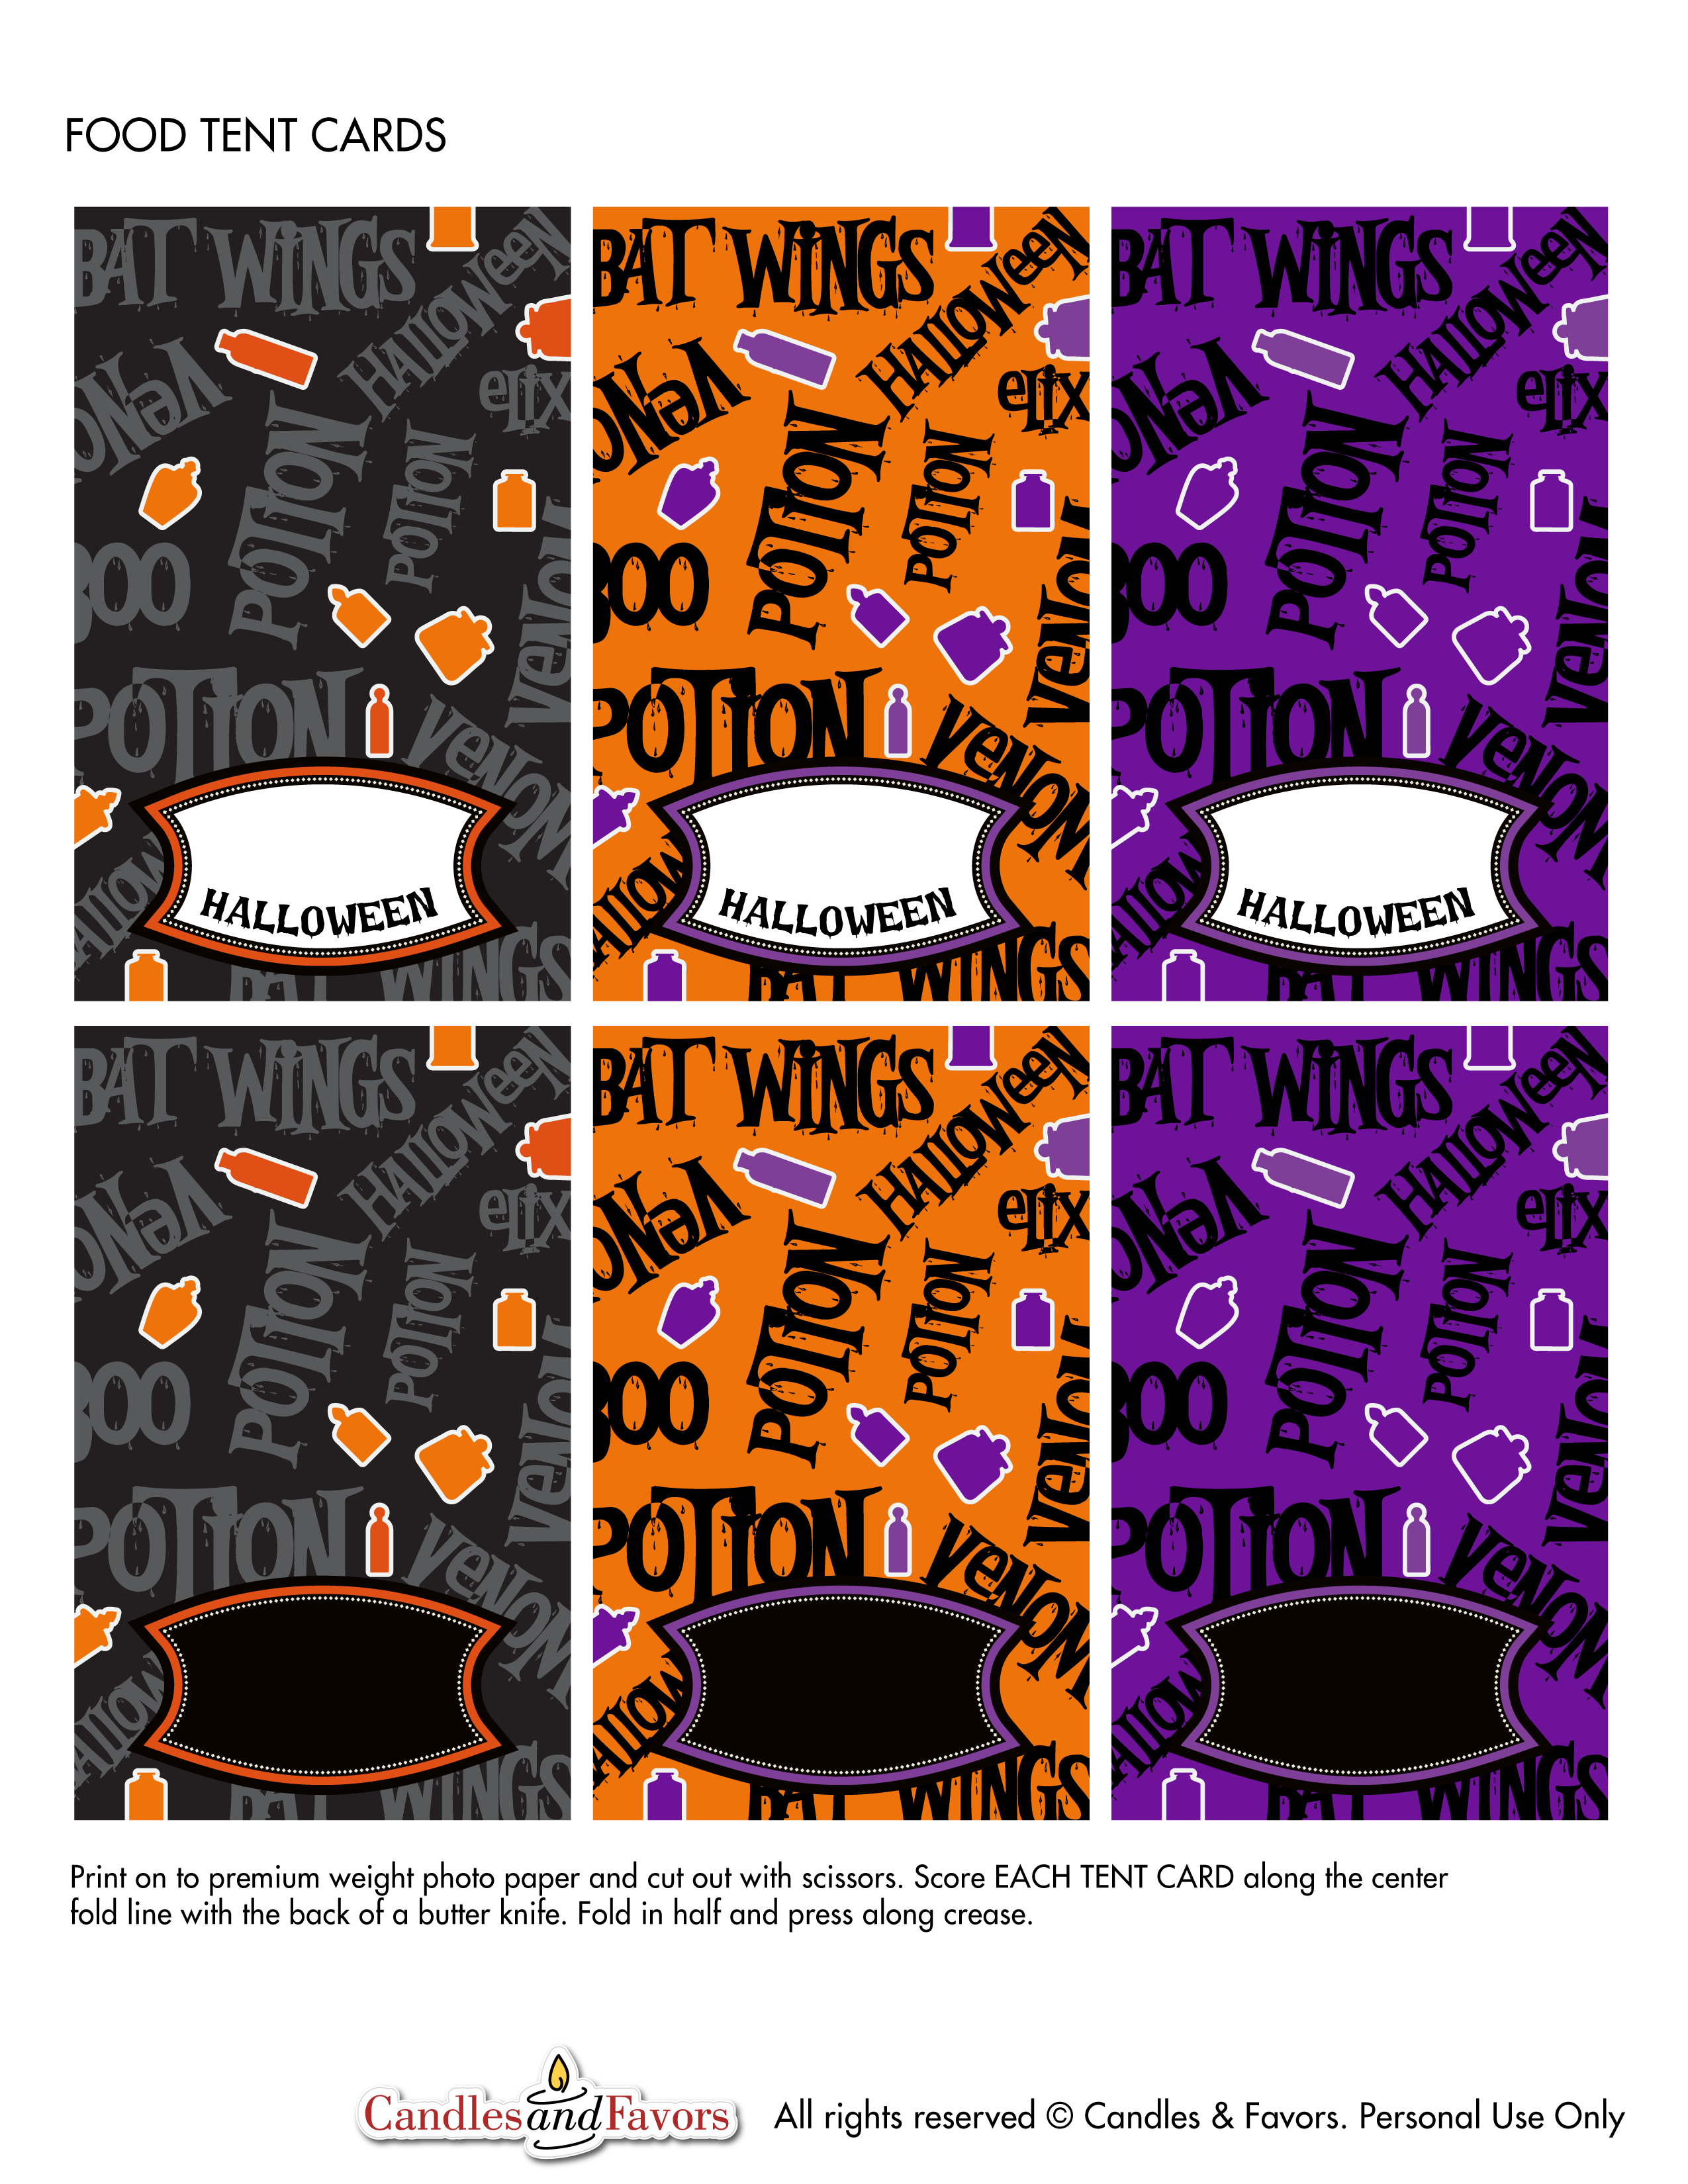 Download the Venom and Potions Free Halloween Party Printables Here!  sc 1 st  Catch My Party & Venom and Potions Free Halloween Party Printables   Catch My Party